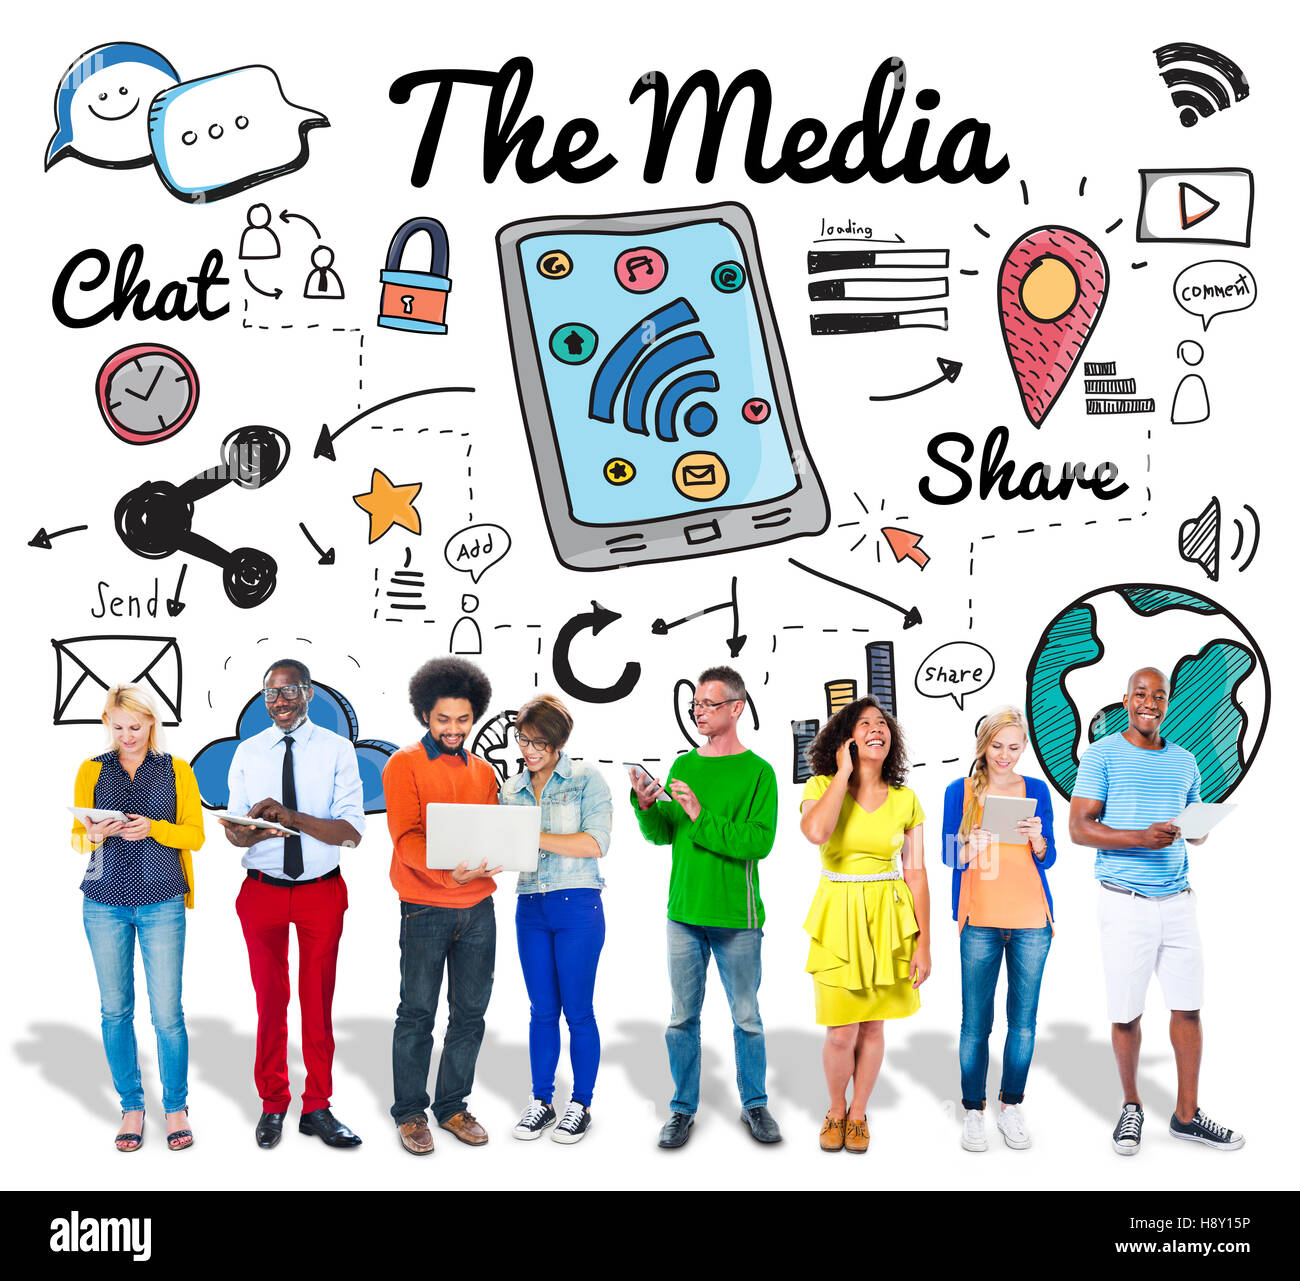 The Media Information Communication Message Concept Stock Photo